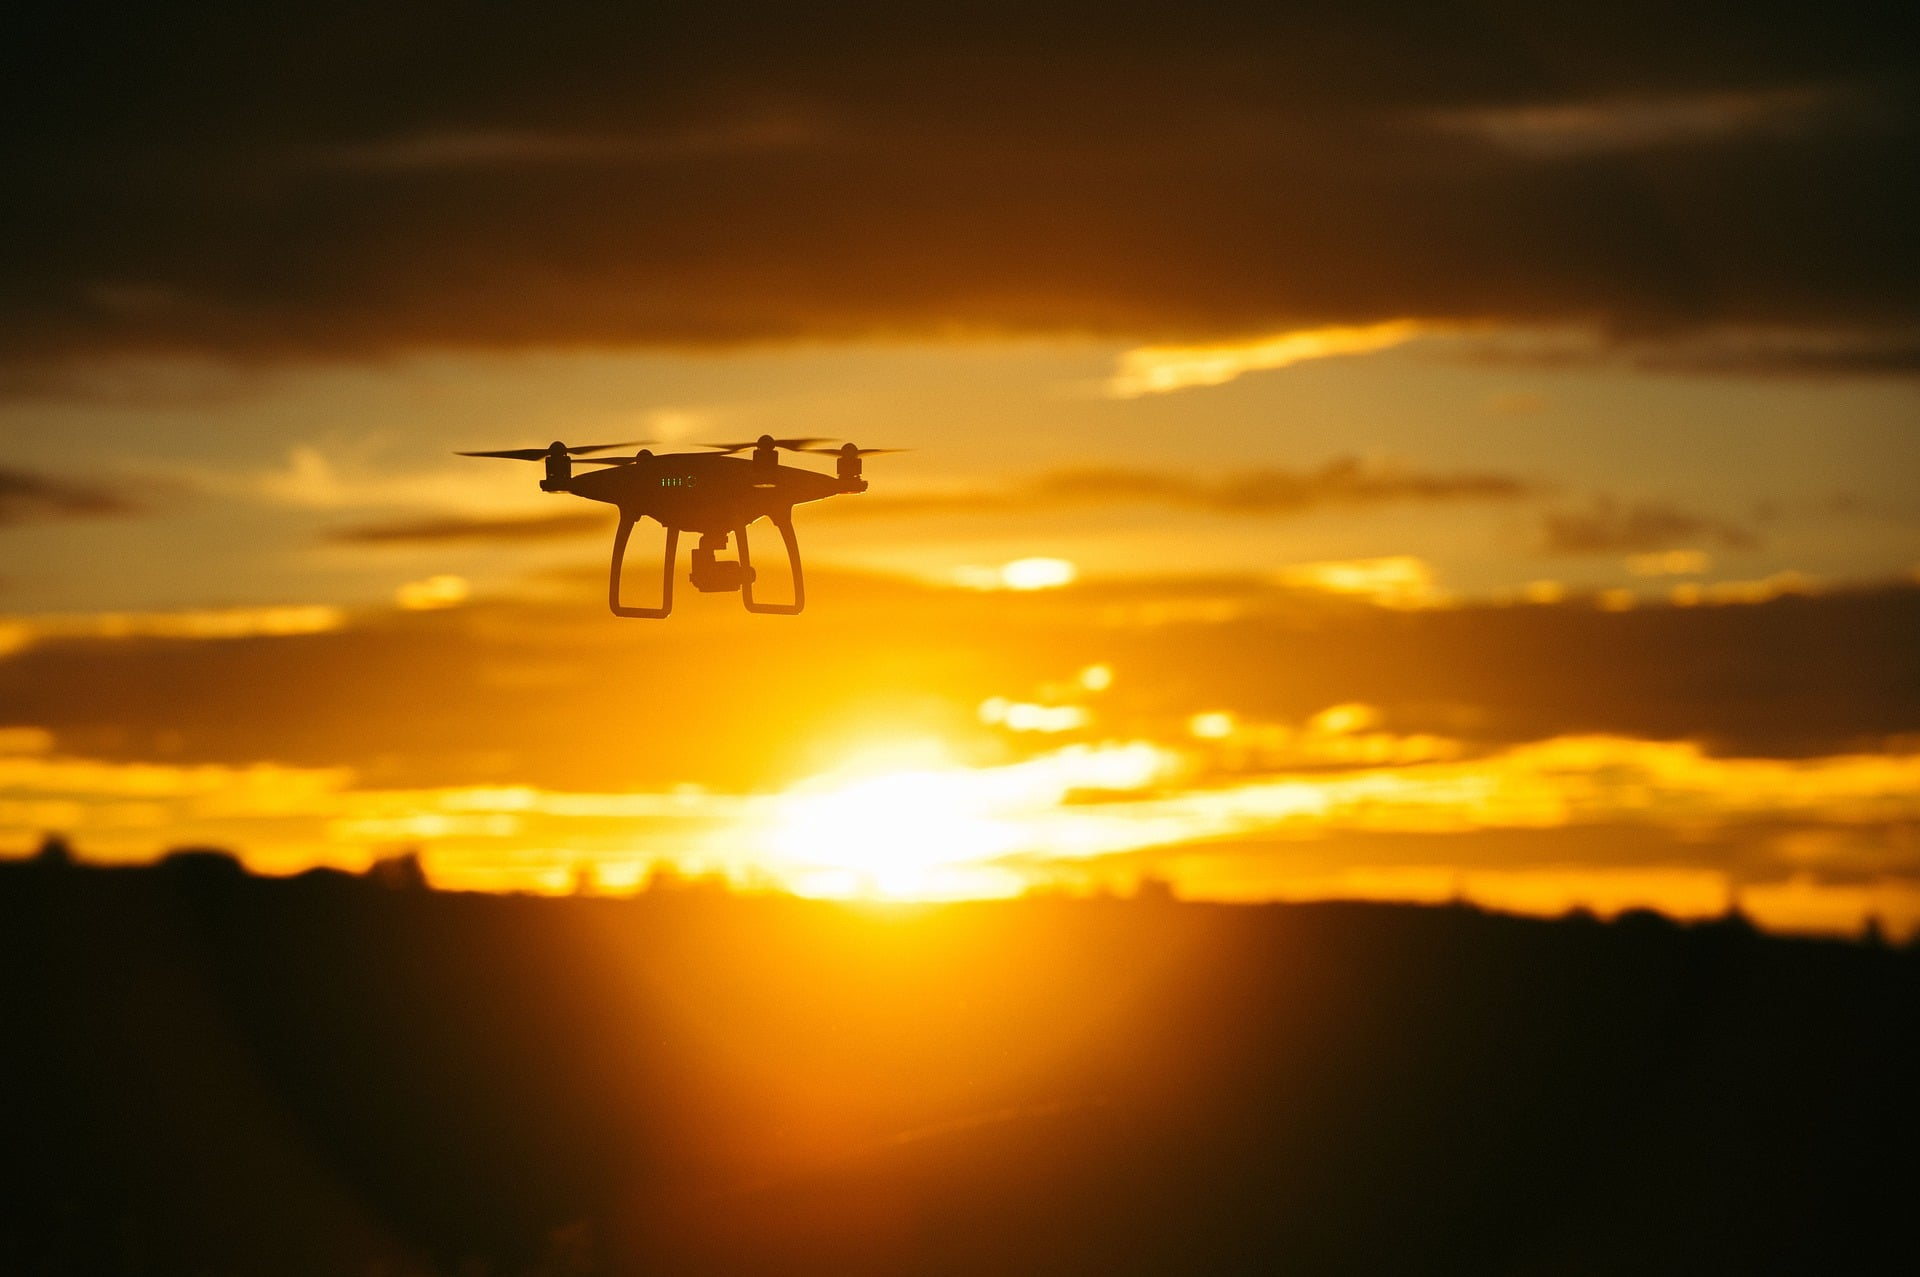 New EU Regulations for Drone Safety and Privacy